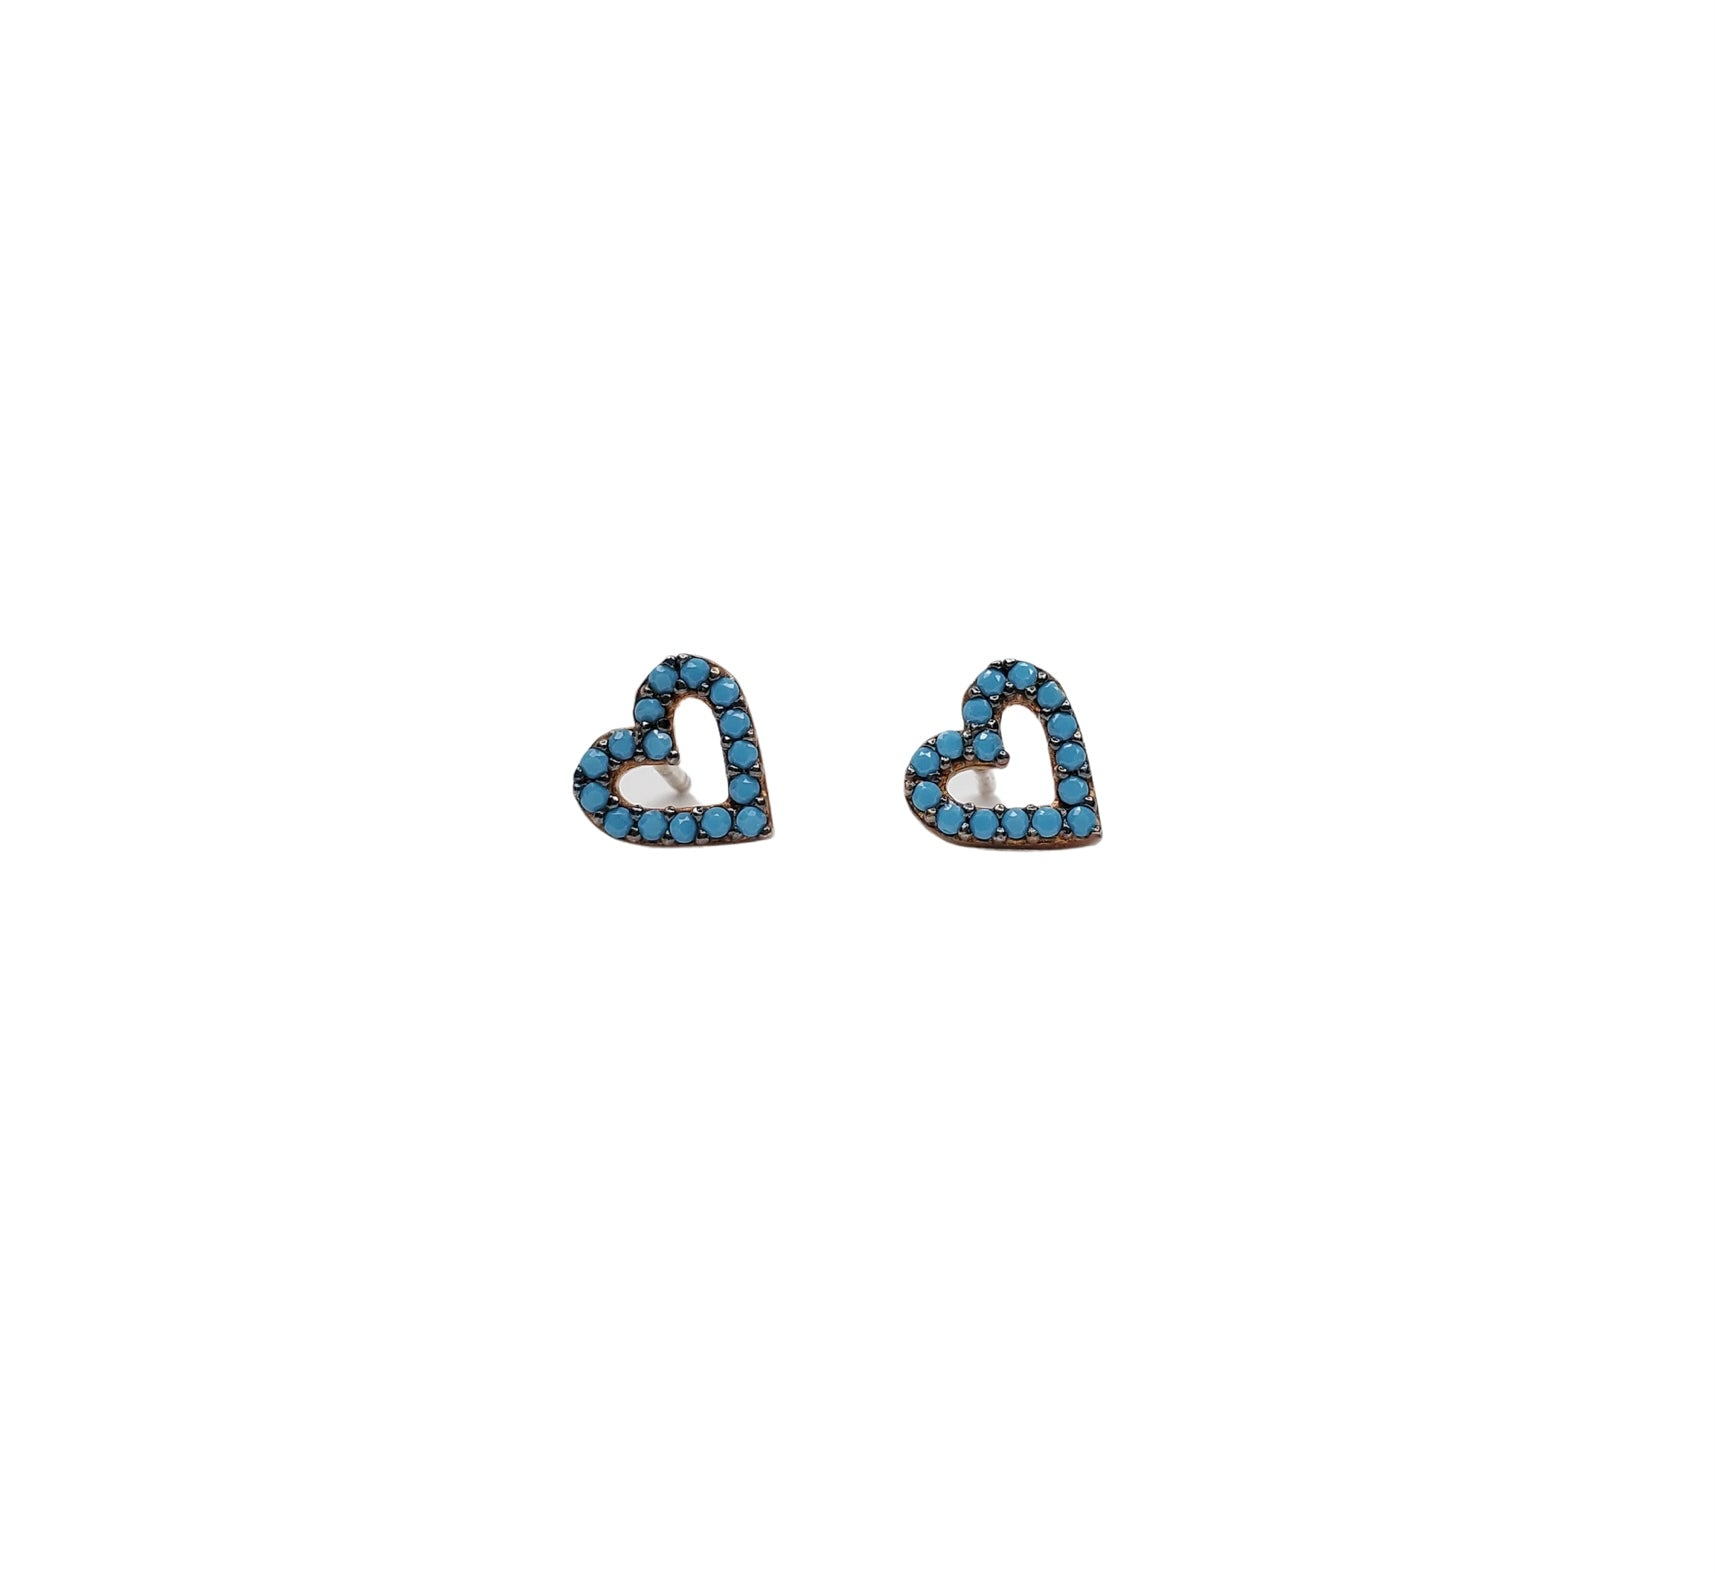 Turquoise zirconia, heart shaped stud earrings.